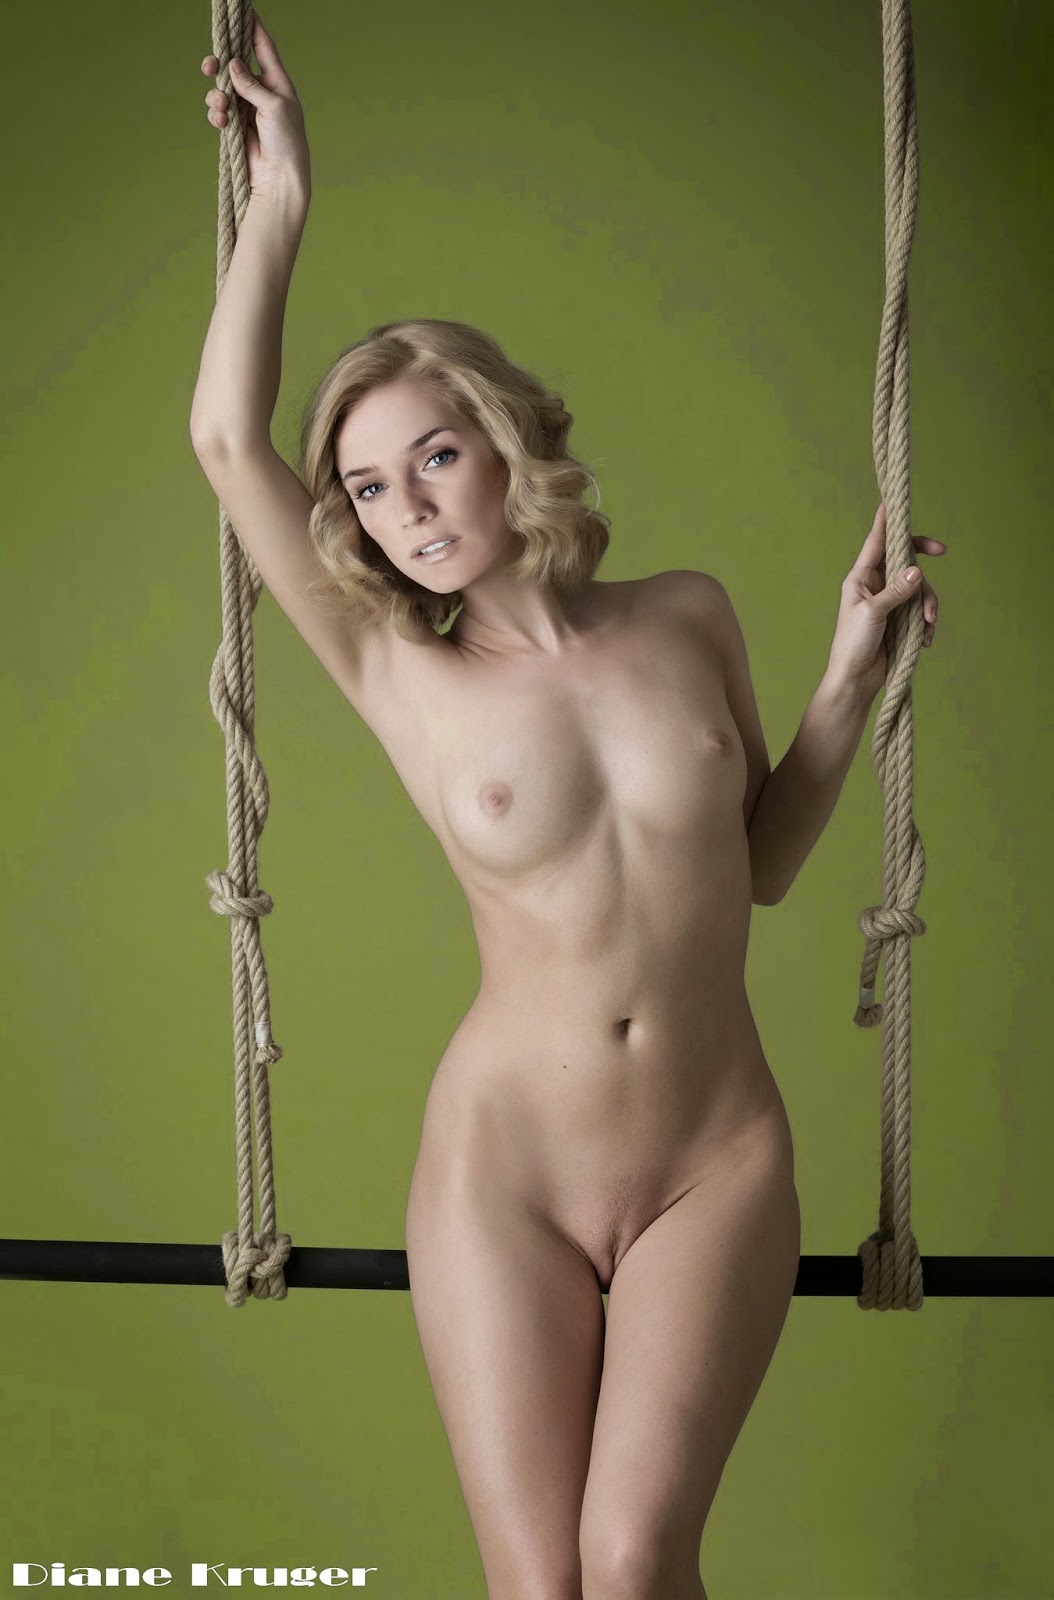 nude celebrities from national treasure